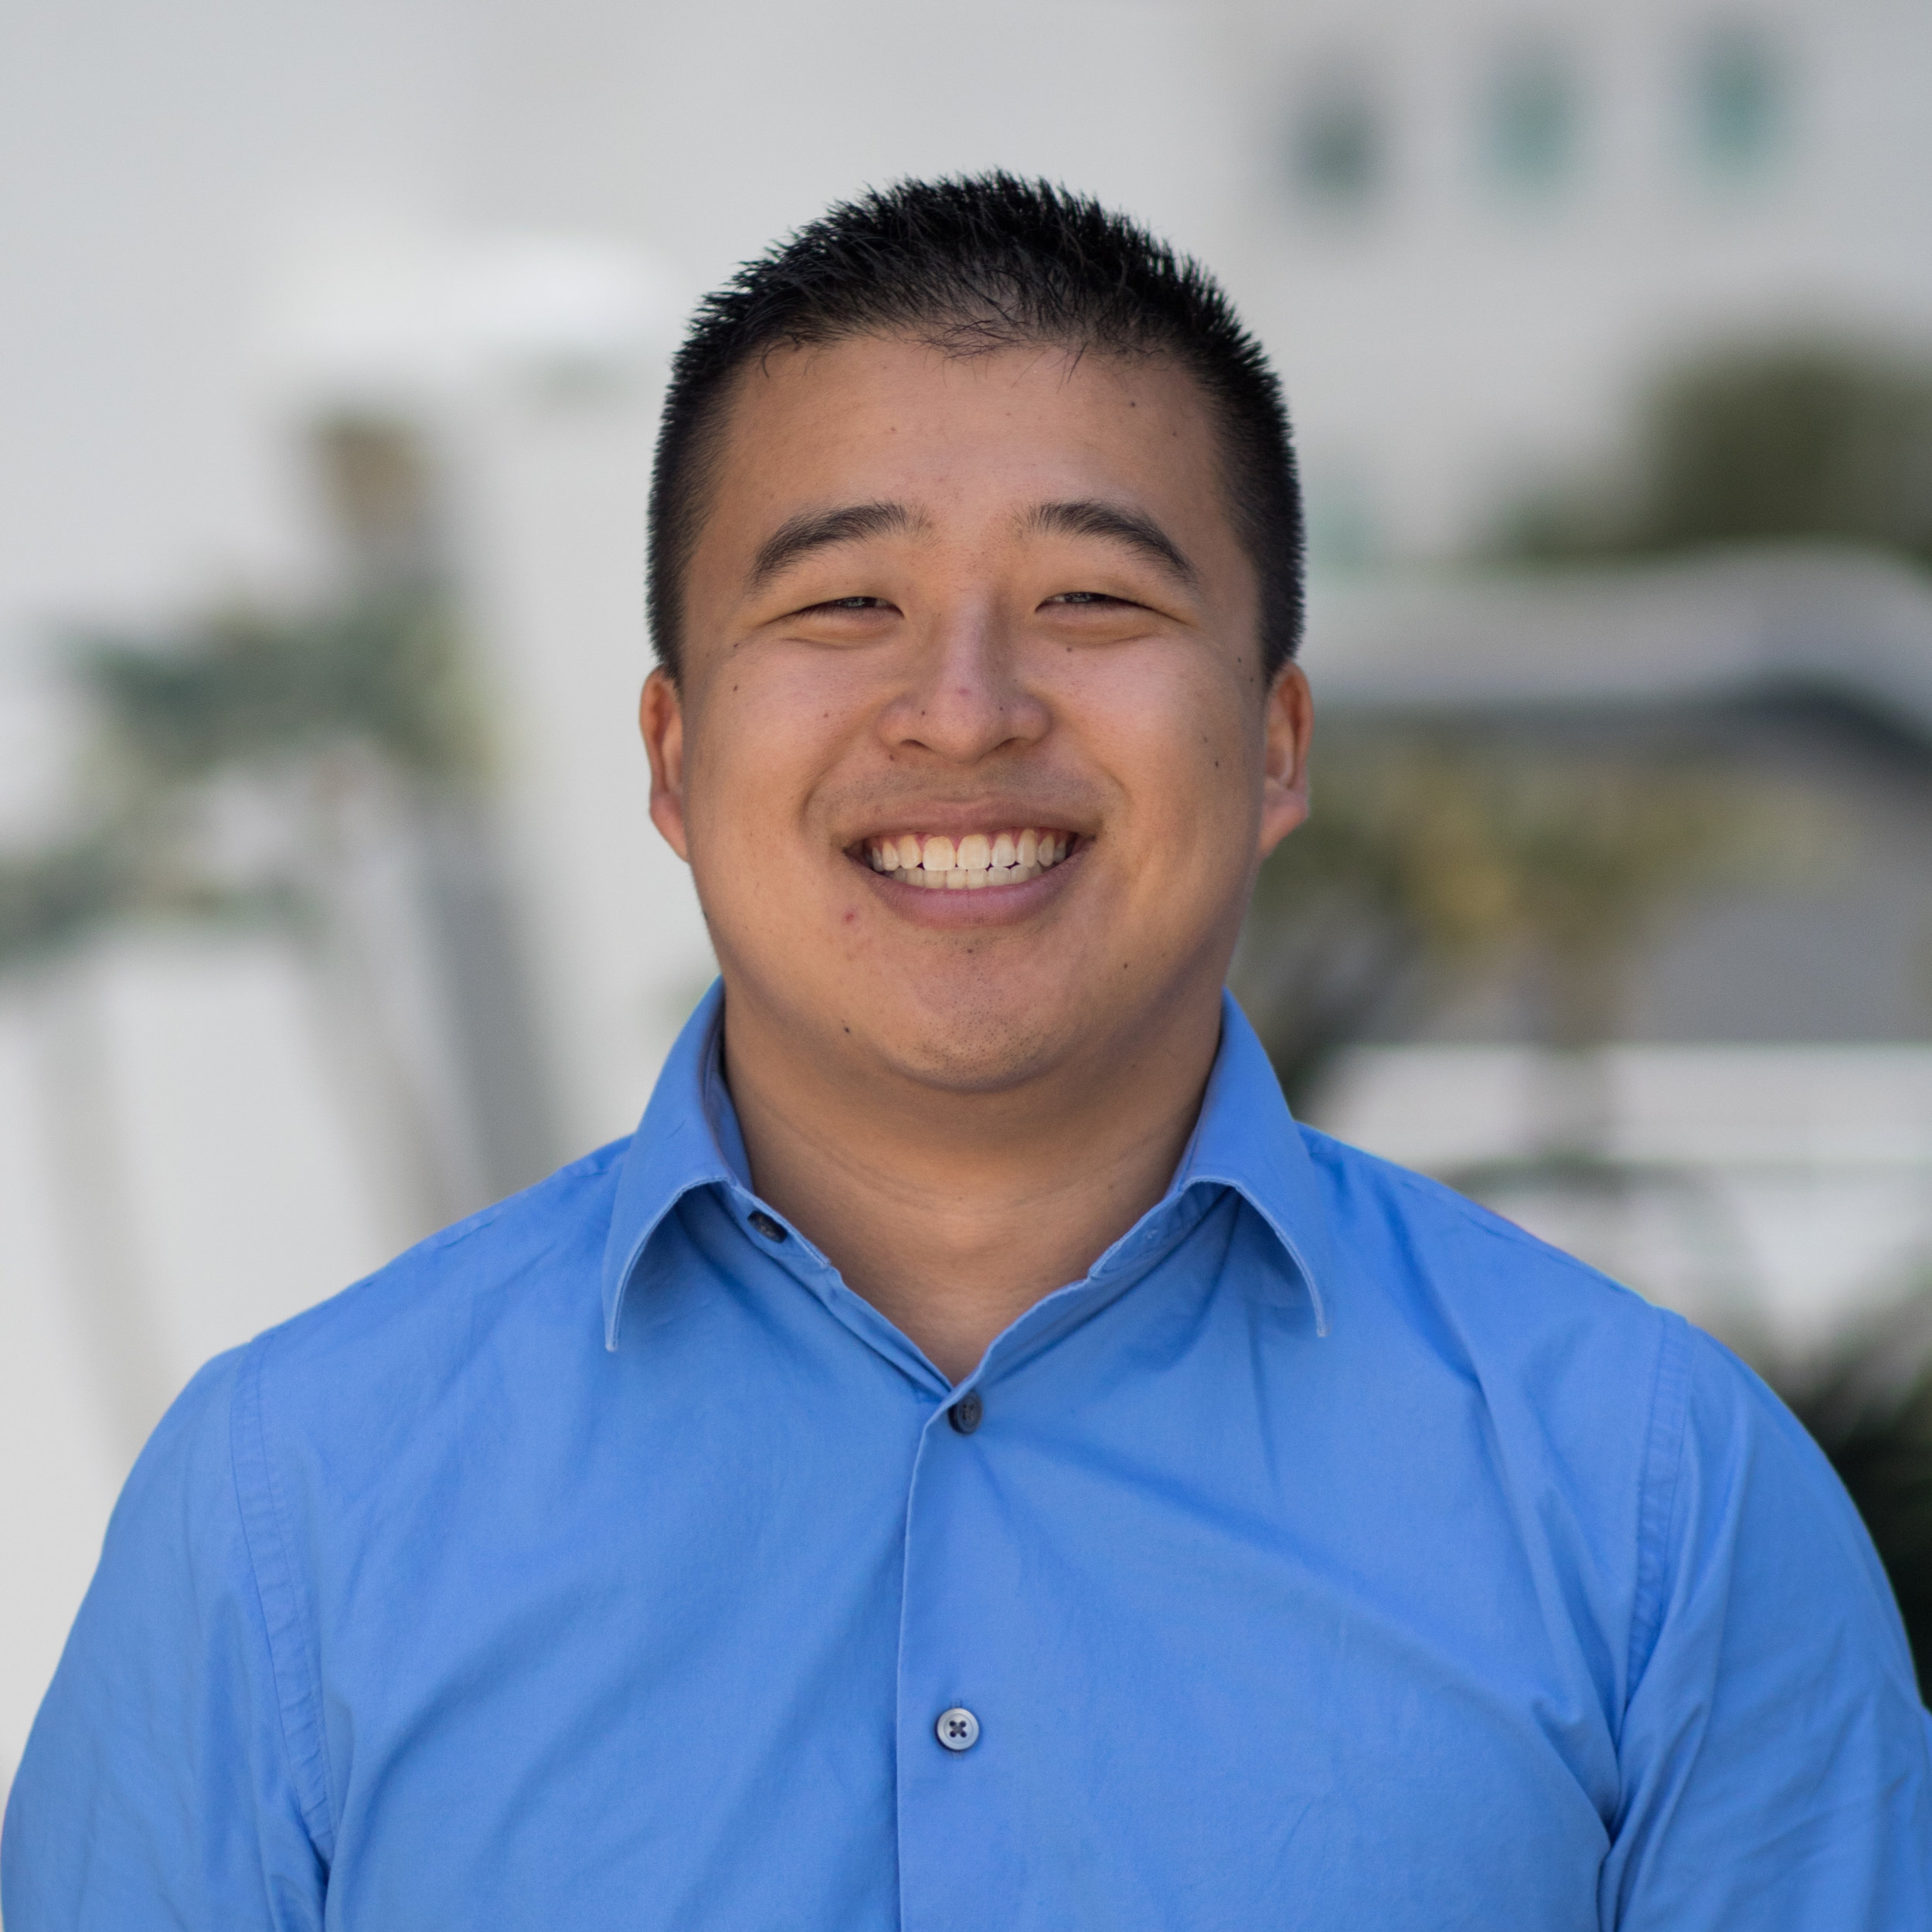 Hi, I'm Harrison. - I am a 2nd year Economics Ph.D. student at the University of California at Santa Cruz as well a Part-Time Economics Instructor at Saddleback College. My research interests lie at the intersection of monetary economics, macrofinance, and international finance. I am currently interested in investigating monetary transmission mechanisms, central banking, and financial markets in East Asian economies.Email   hashieh@ucsc.edu